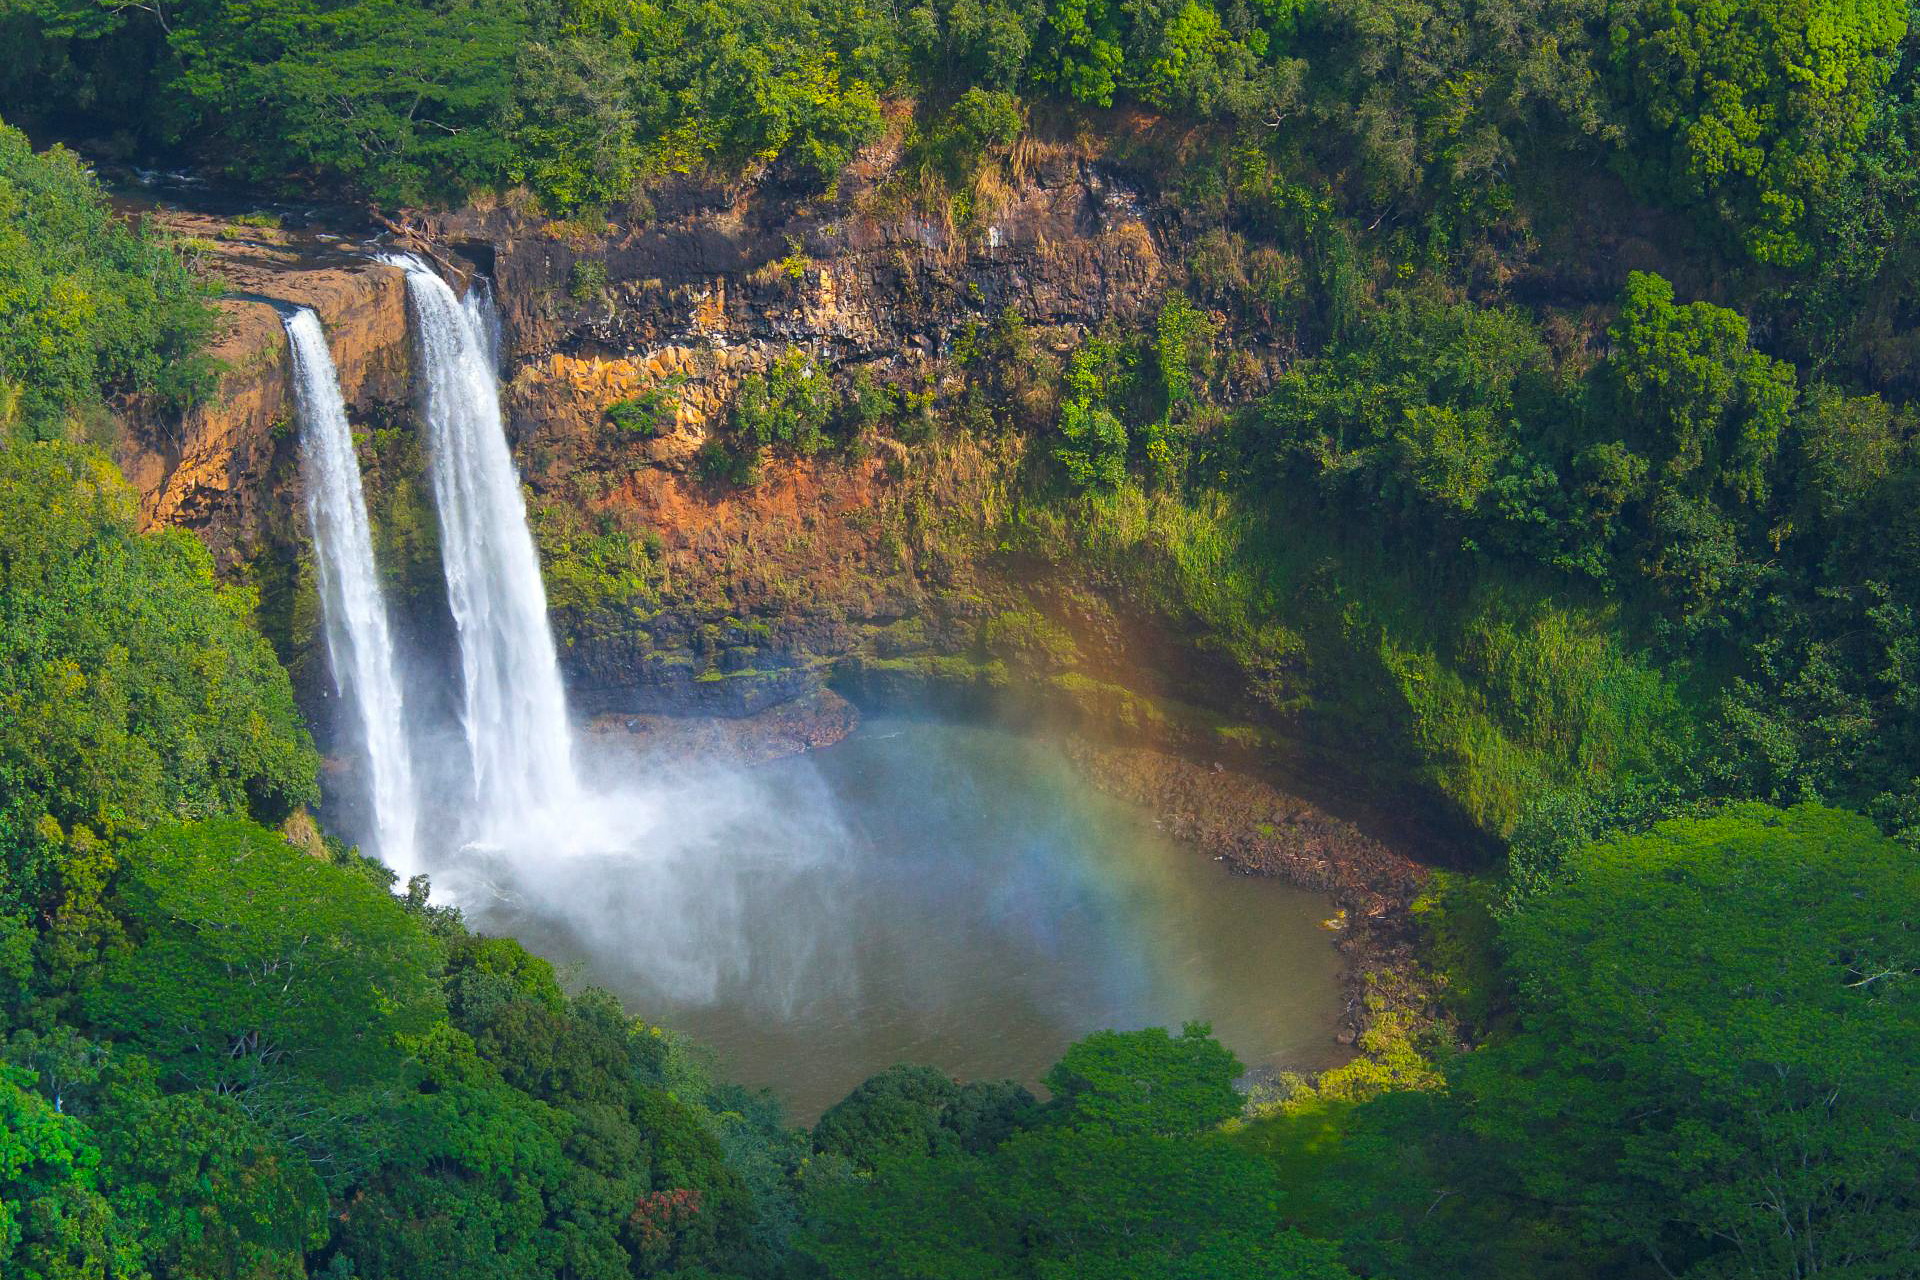 WAILUA FALLS - Wailua Falls is a 173 foot waterfall located near Lihue that feeds into the Wailua River. The waterfall is prominently featured on the opening credits of the television series Fantasy Island. There are paths to the bottom of the falls, but it can be muddy and slippery.